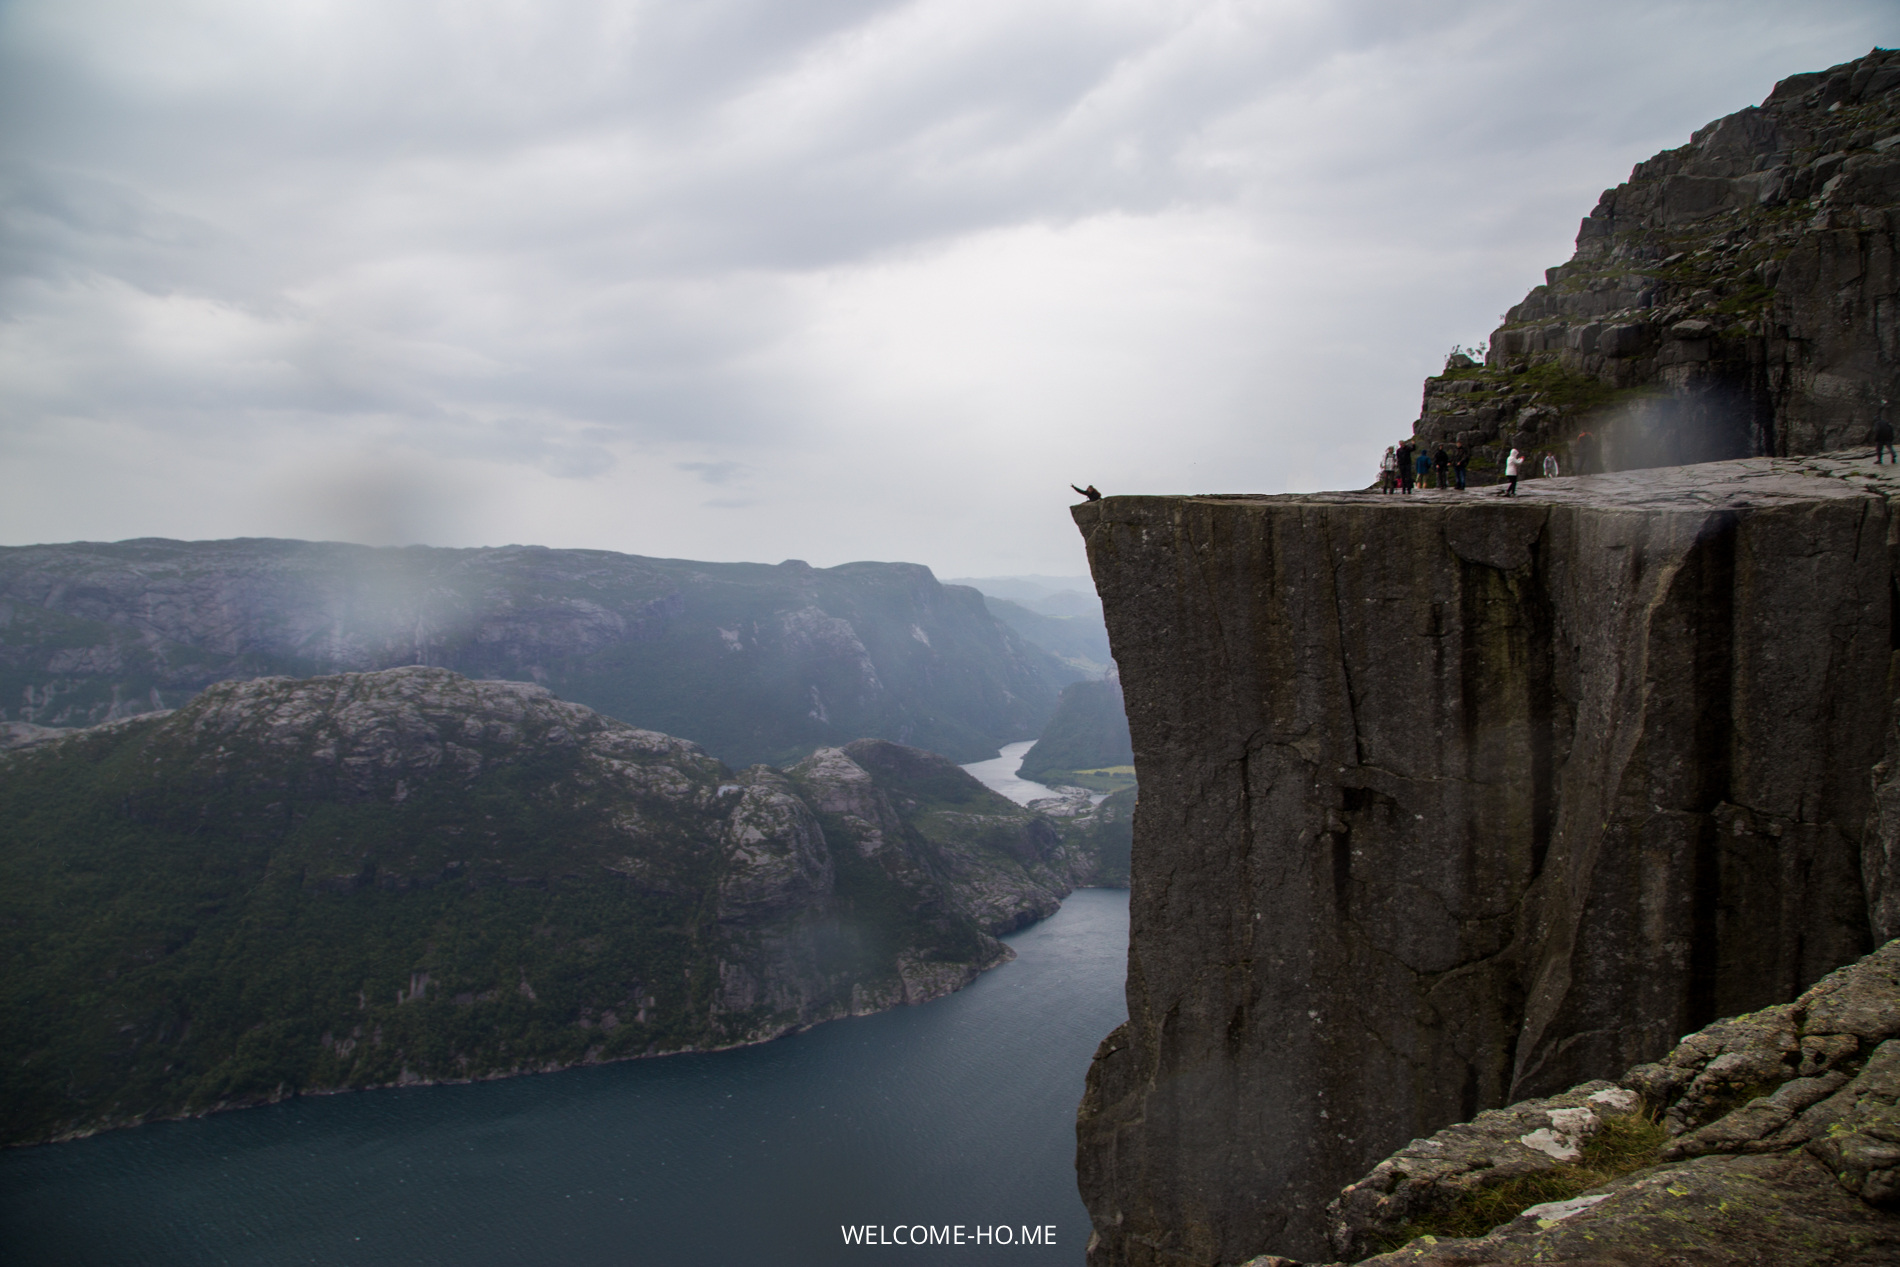 Hiking the Preikestolen, The Pulpit Rock